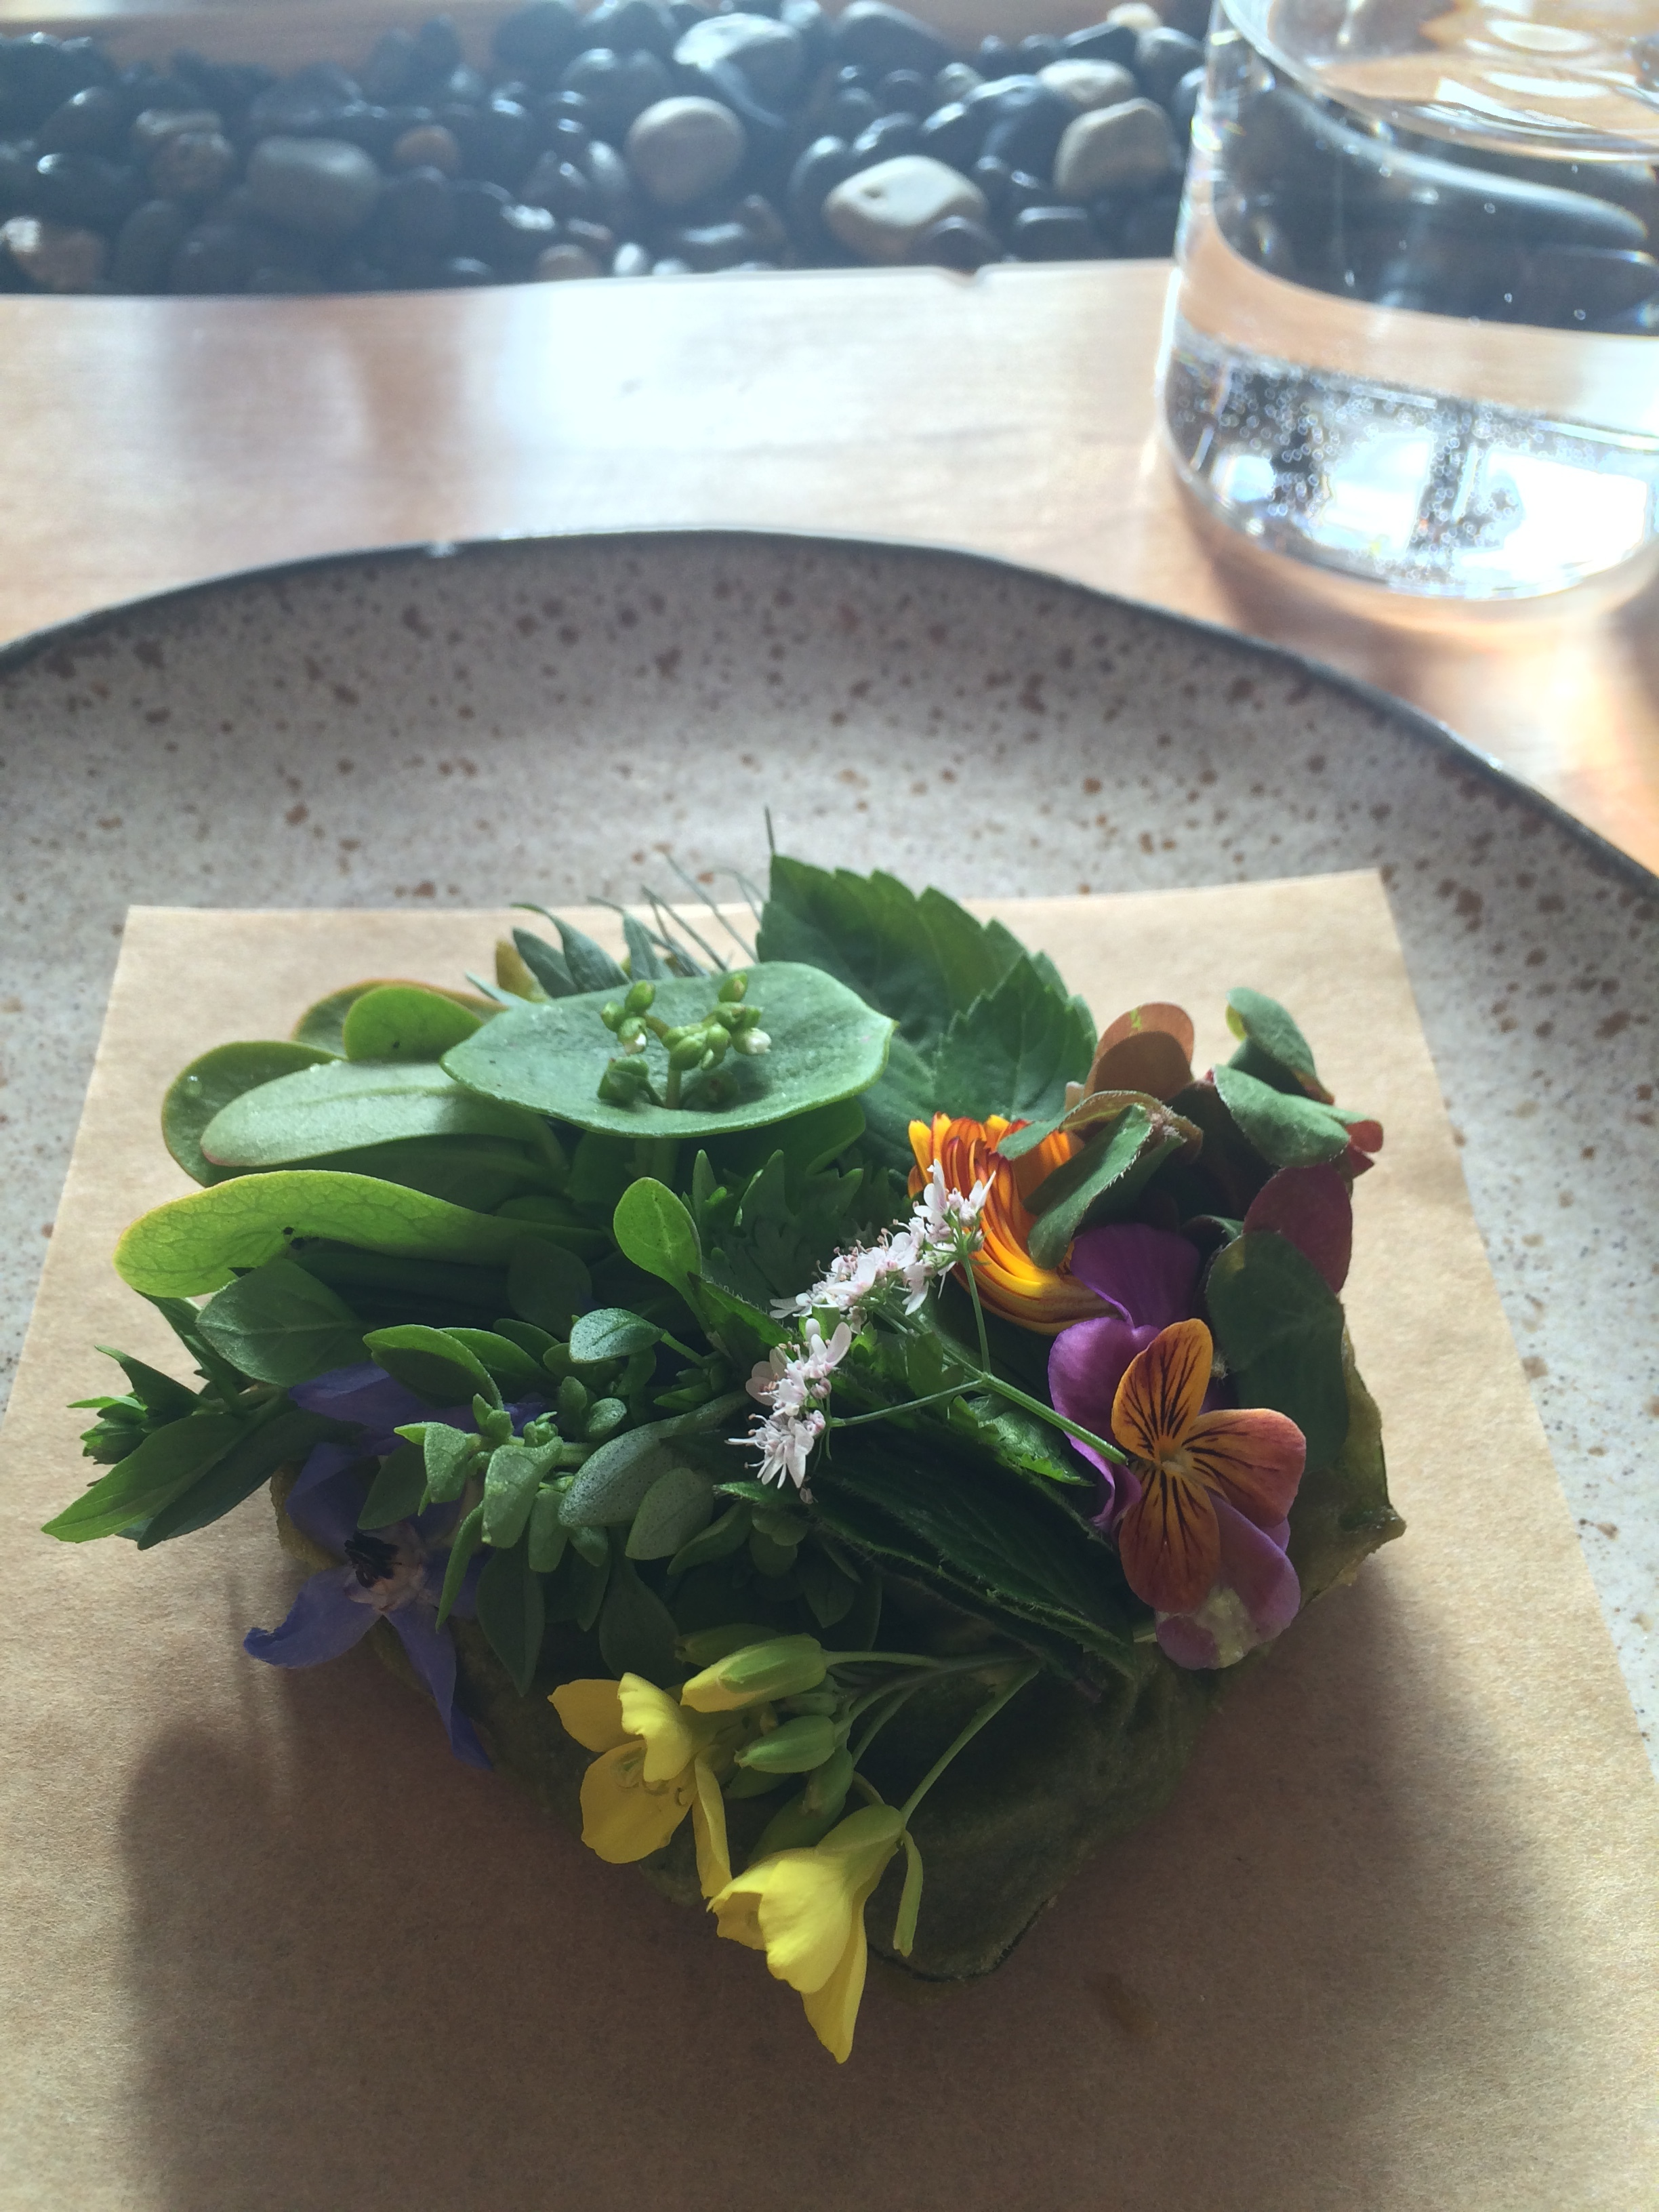 Wild herbs and crispy chicory leaves